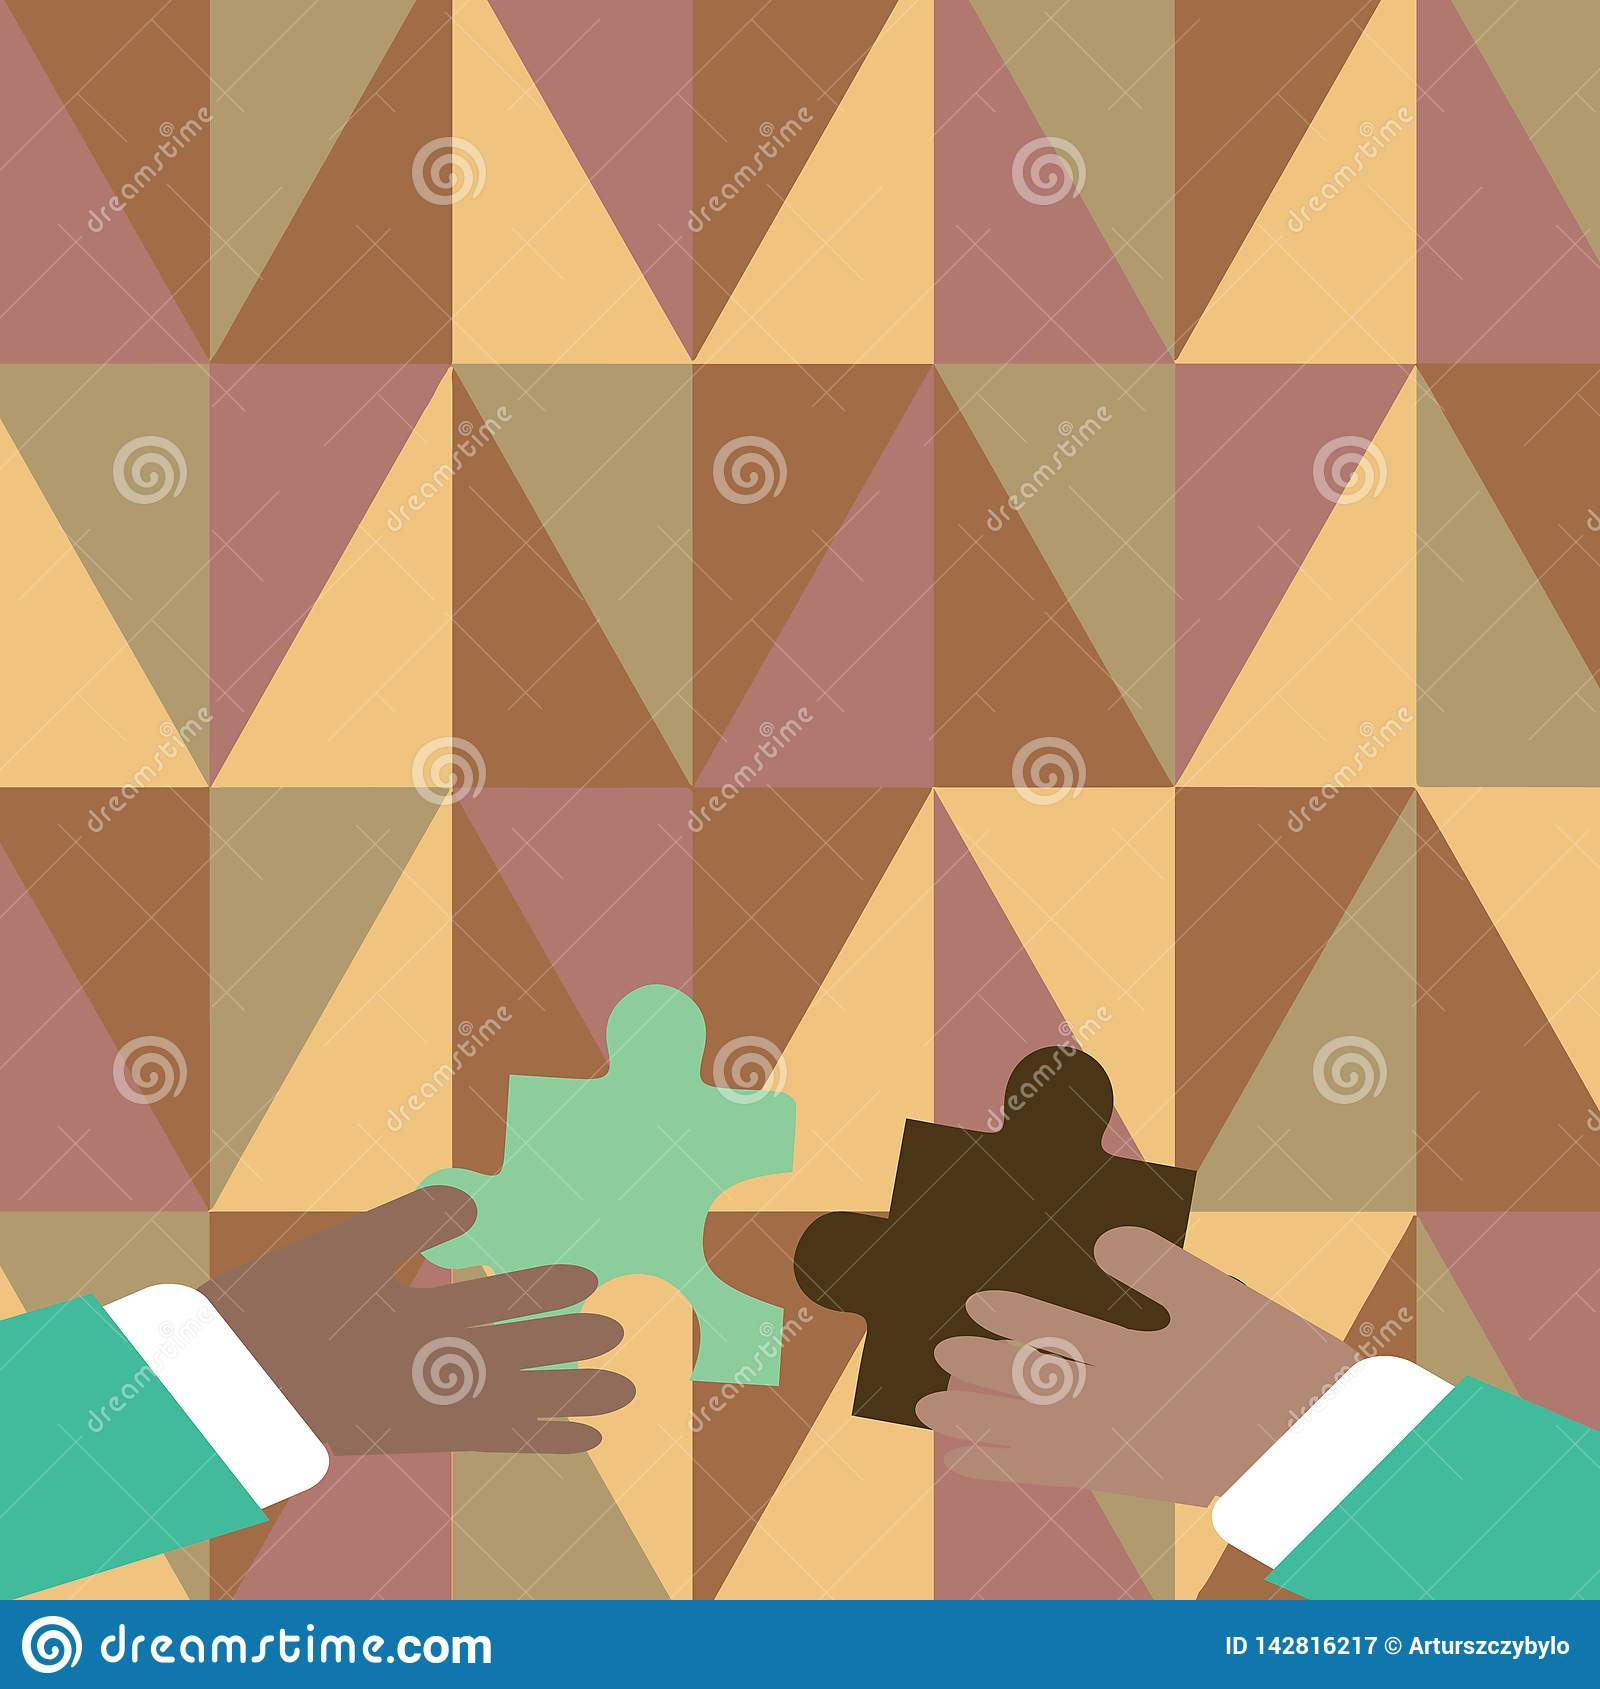 Two Businessmen Hands Holding Colorful Pieces of Jigsaw Puzzle are about to Interlock the Tiles. Creative Background for